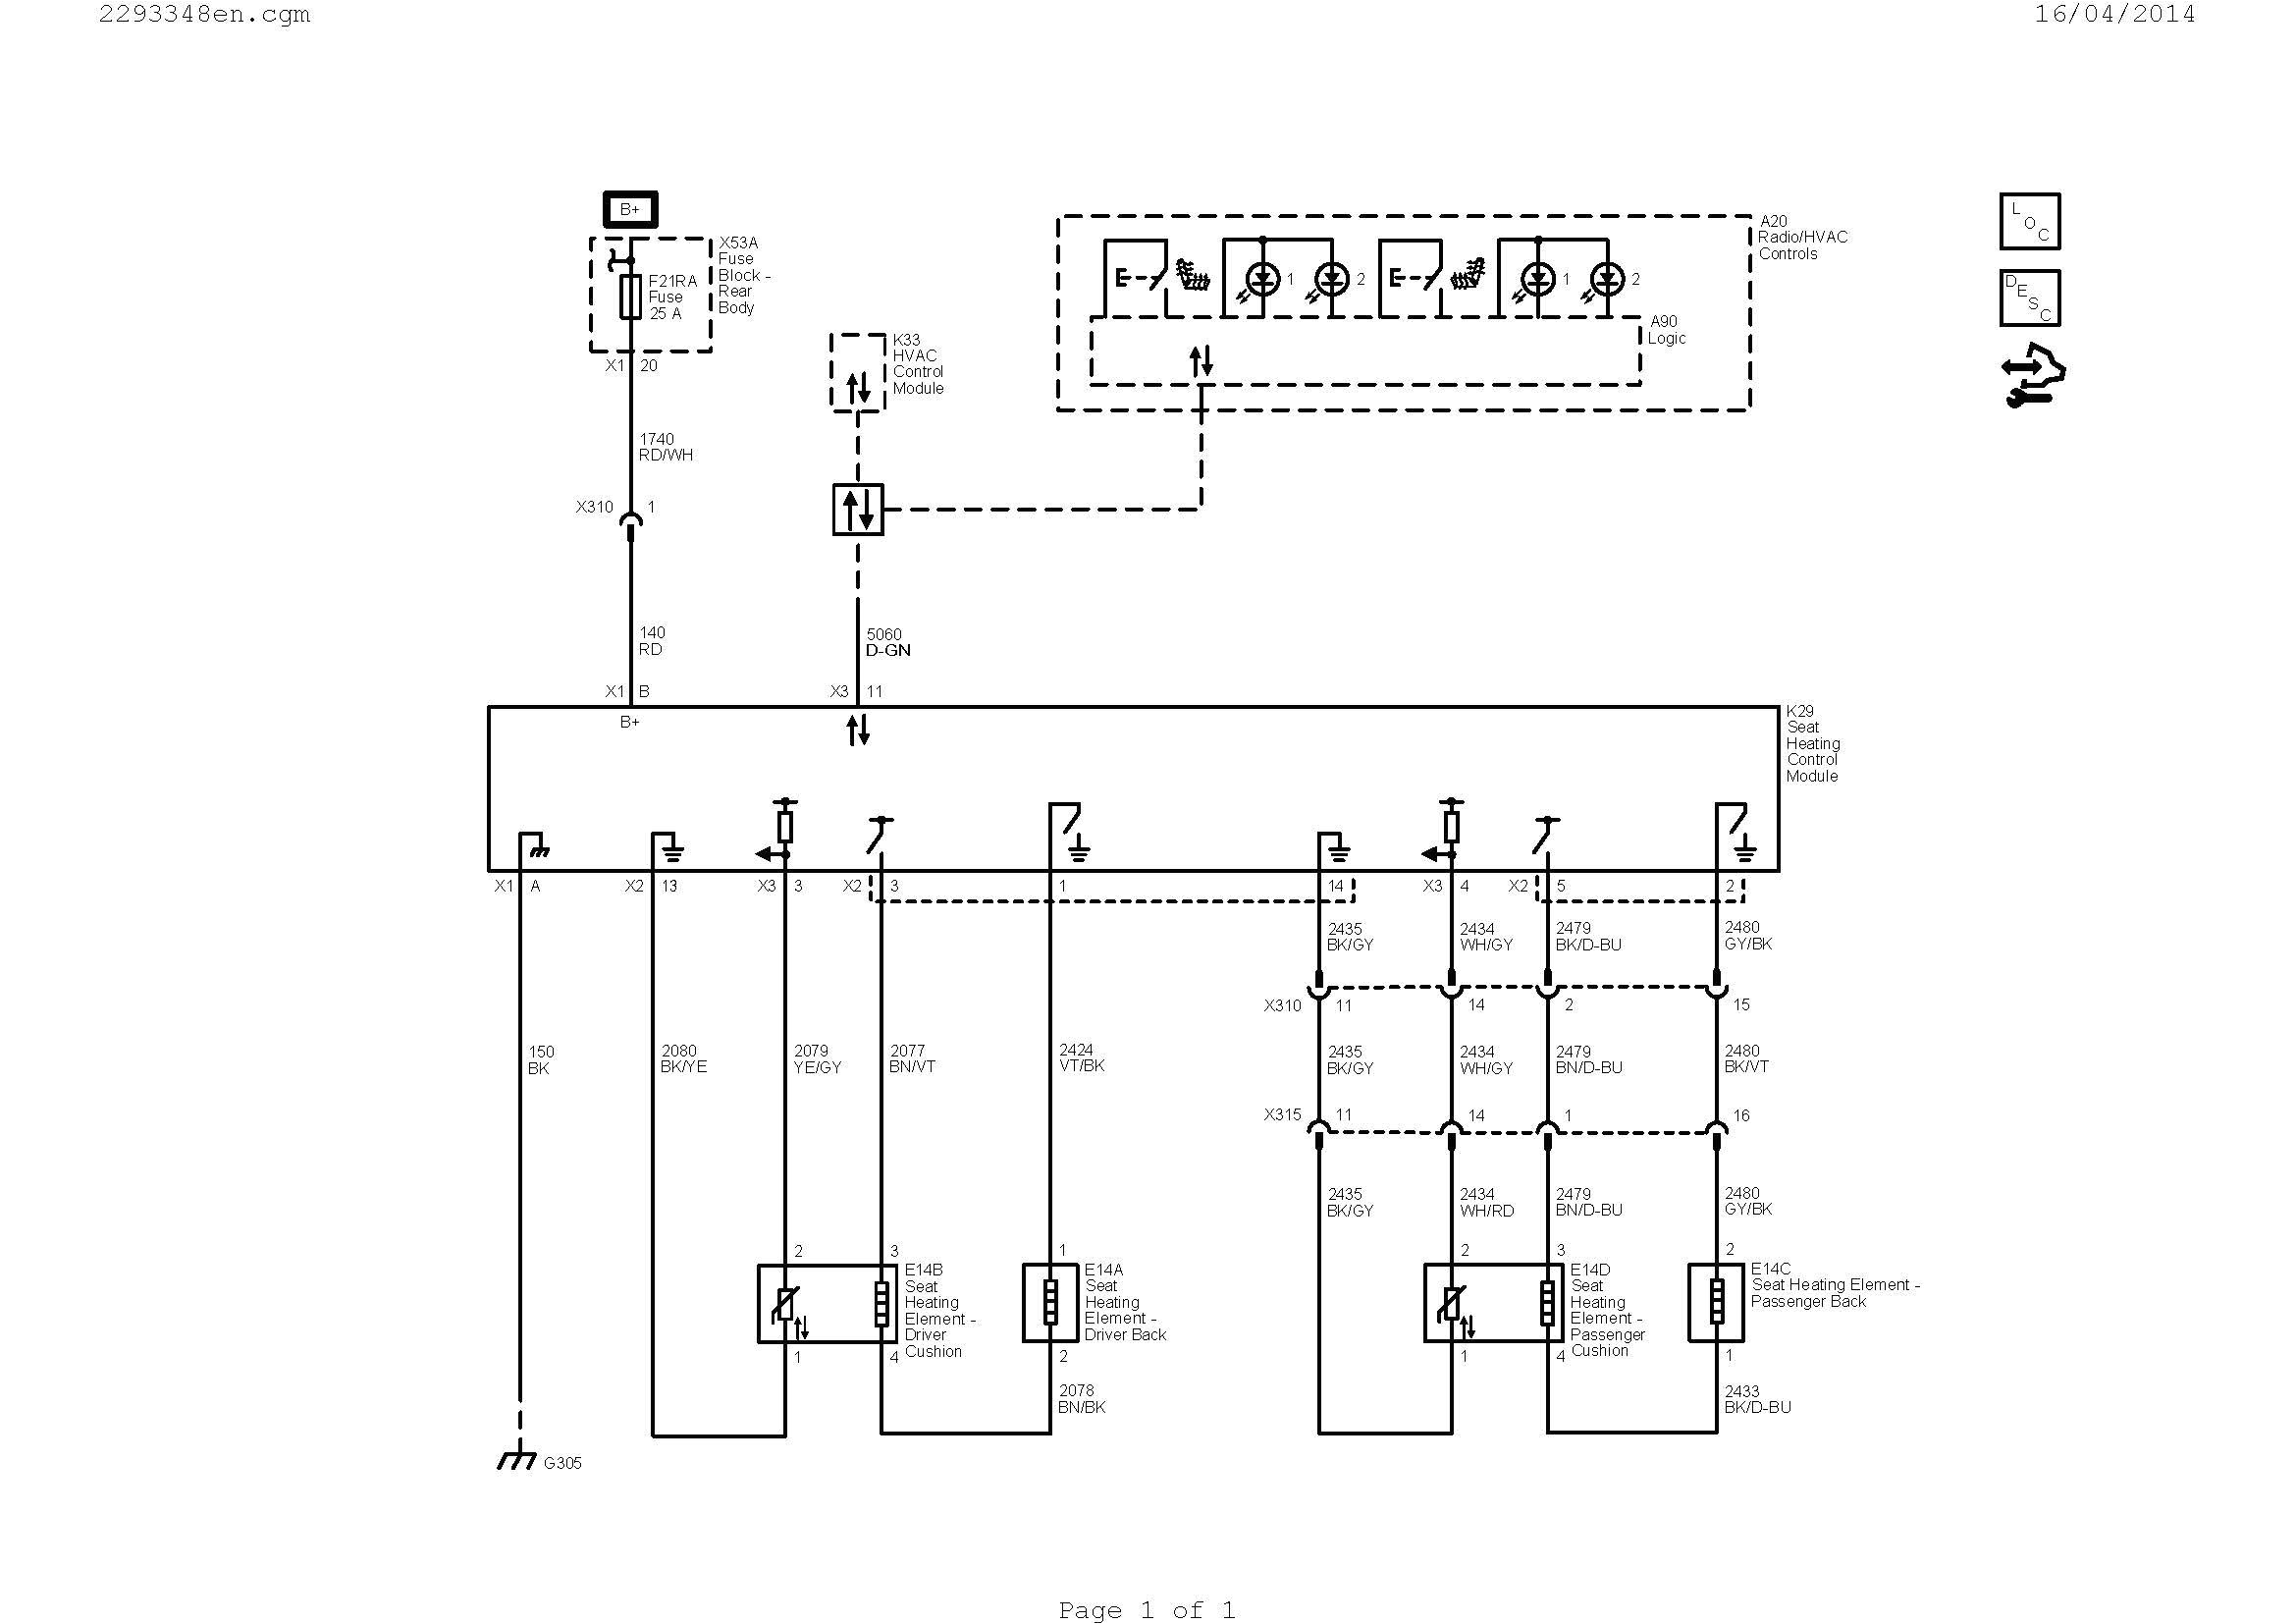 wiring diagram for mitsubishi l200 wiring library with regard to wiring diagram for mitsubishi l200 wiring